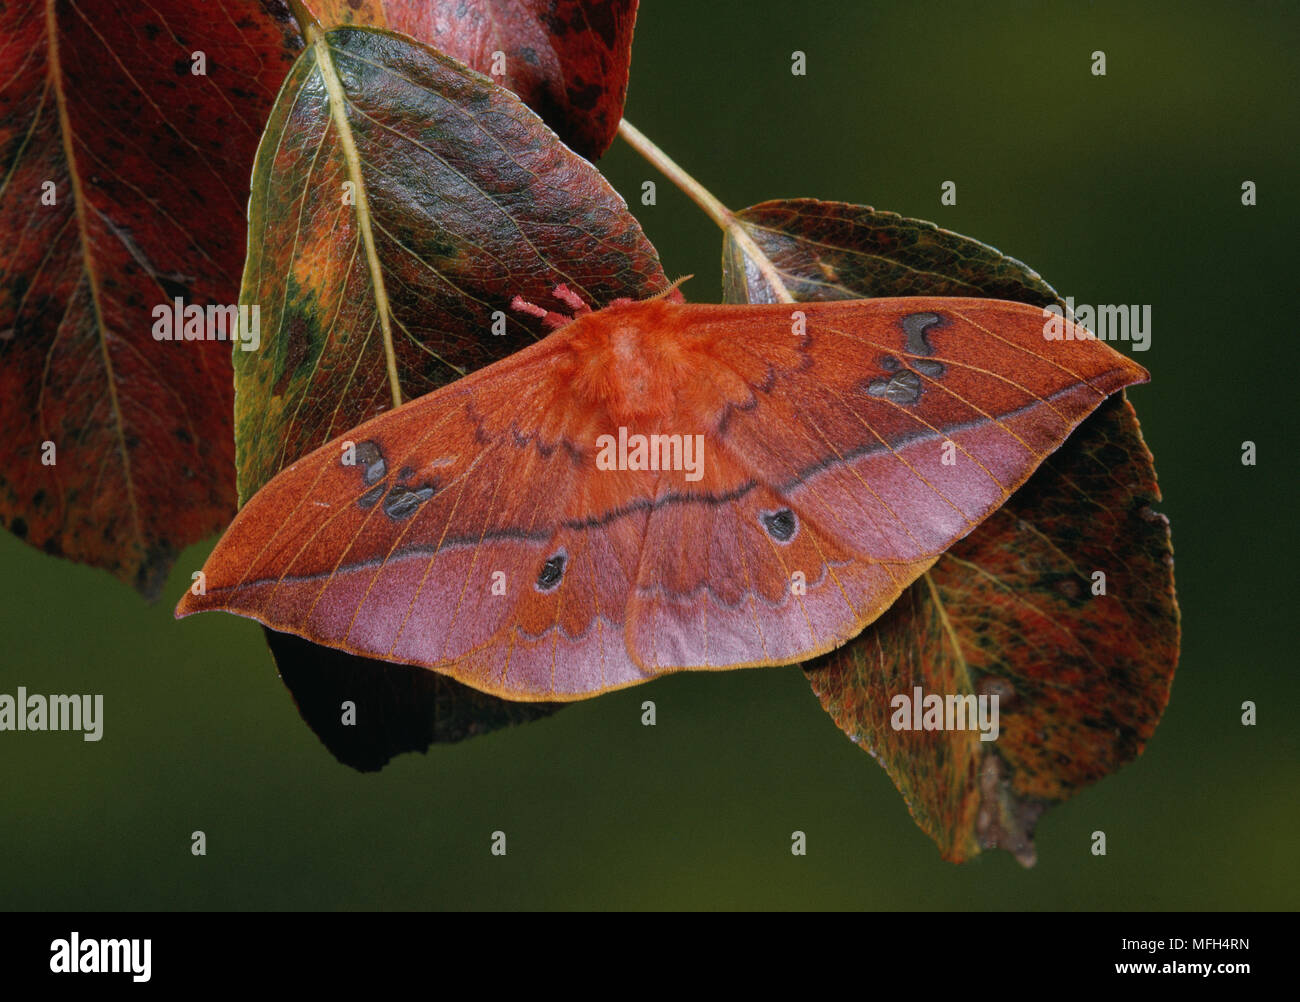 Cryptic Moth Stock Photos & Cryptic Moth Stock Images - Page 2 - Alamy